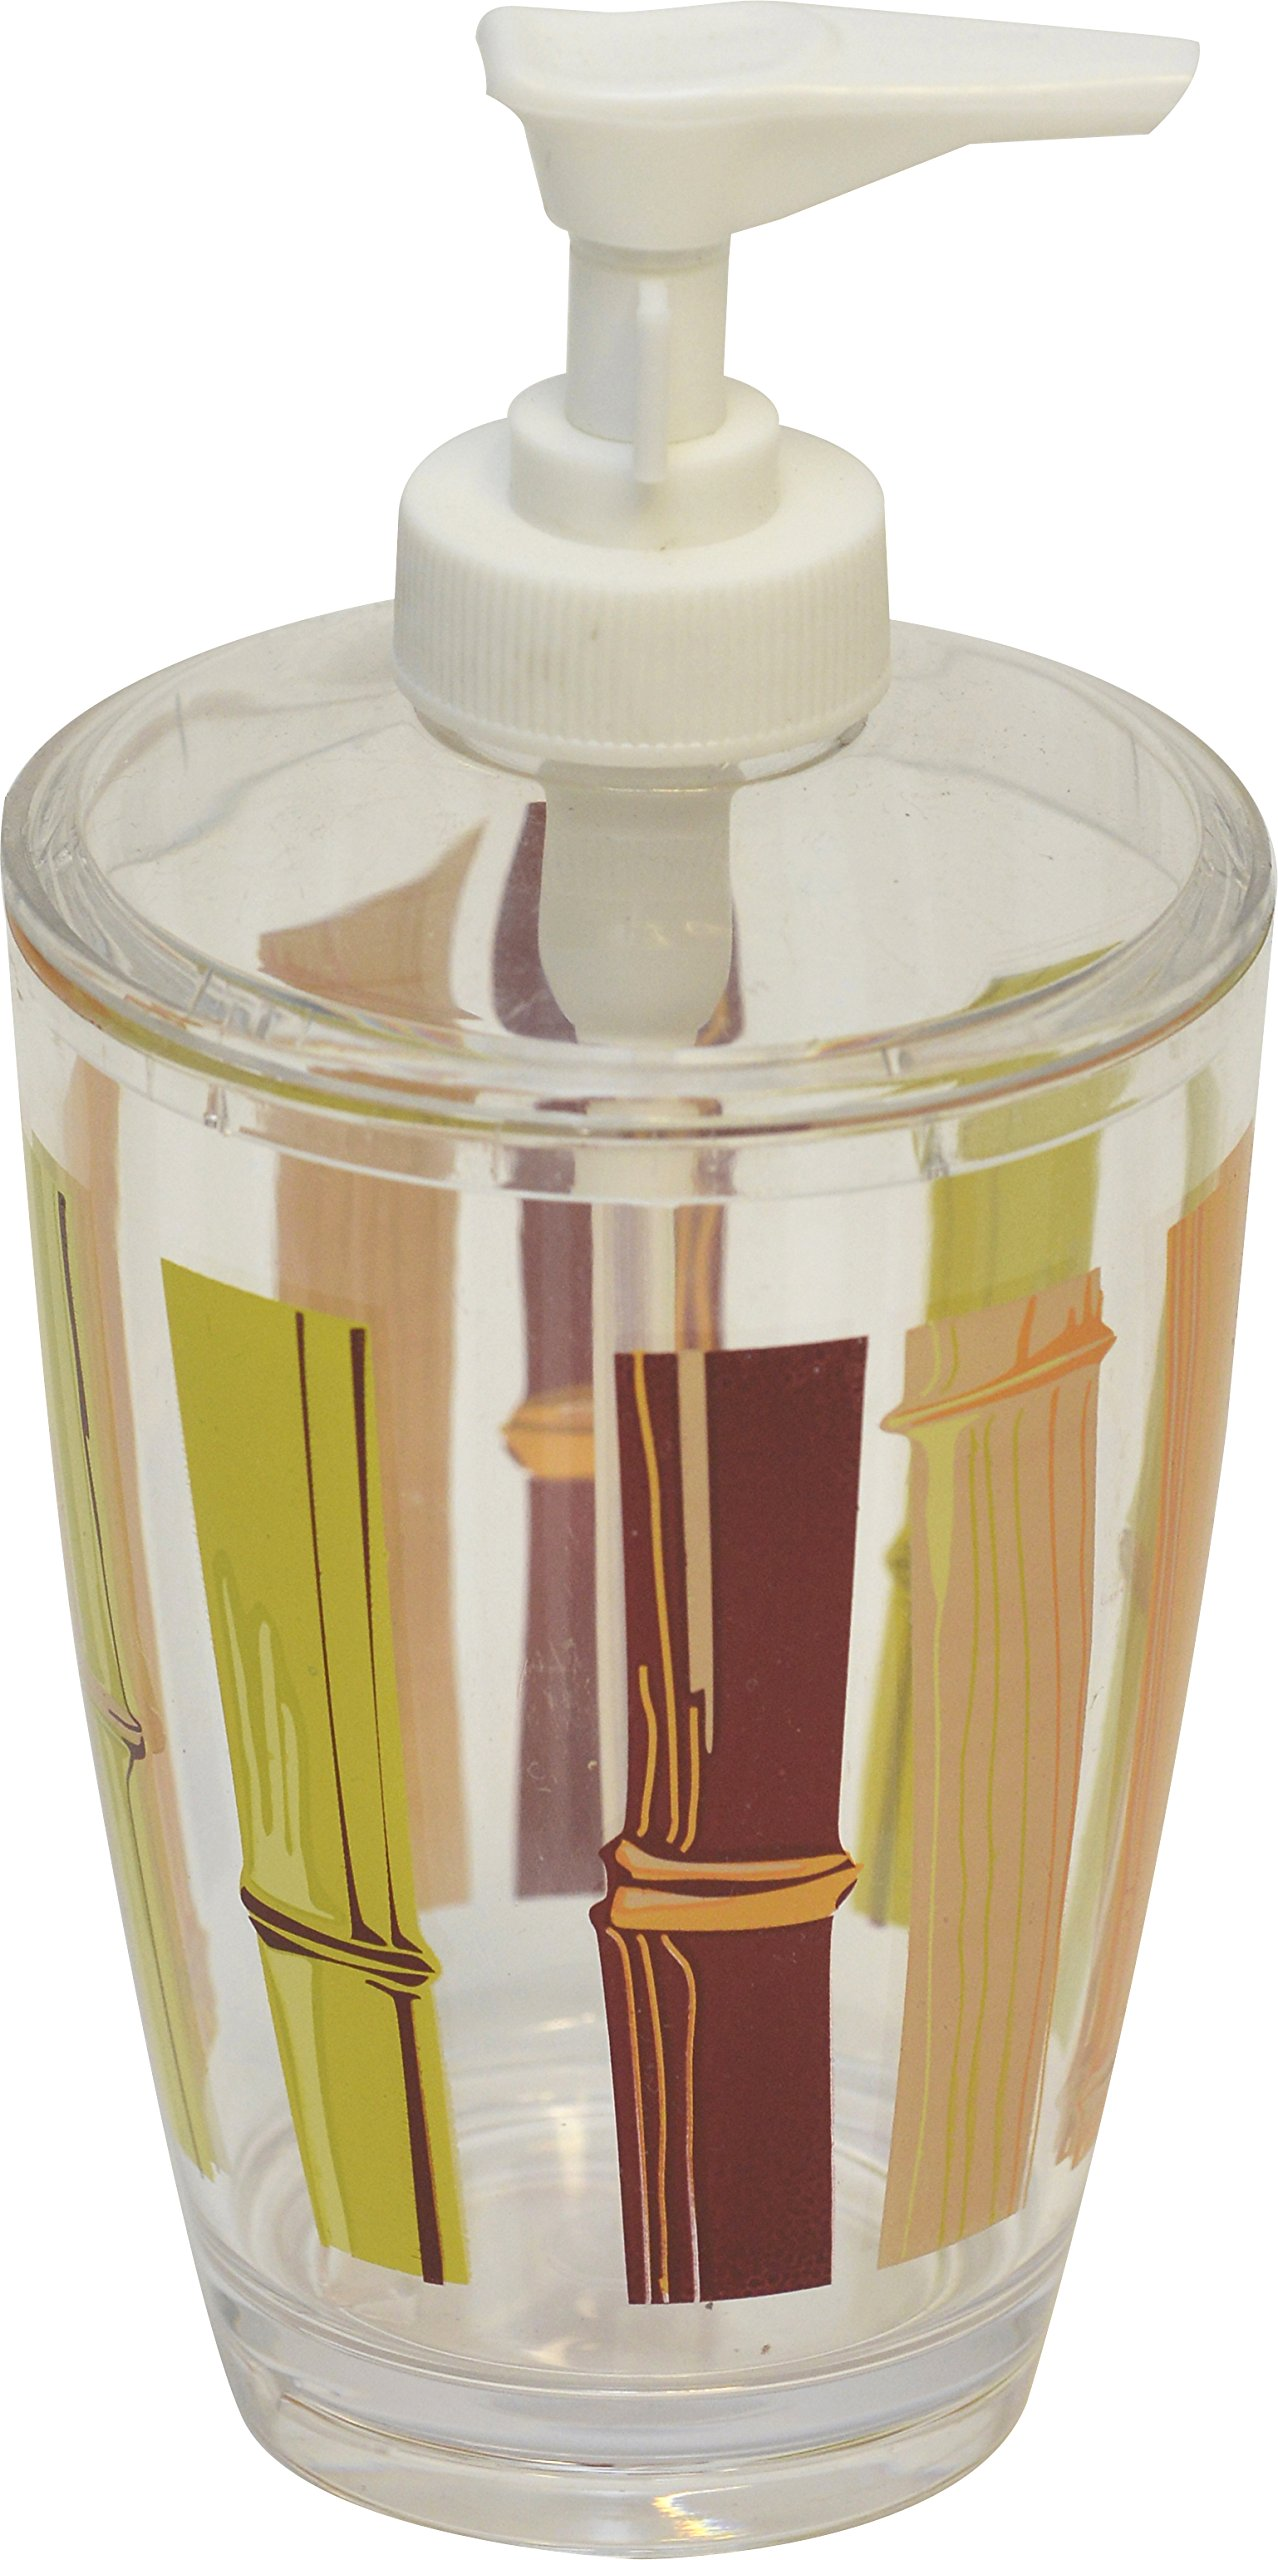 EVIDECO 6200384 Java Clear Acrylic Printed Bathroom Soap and Lotion Dispenser by EVIDECO